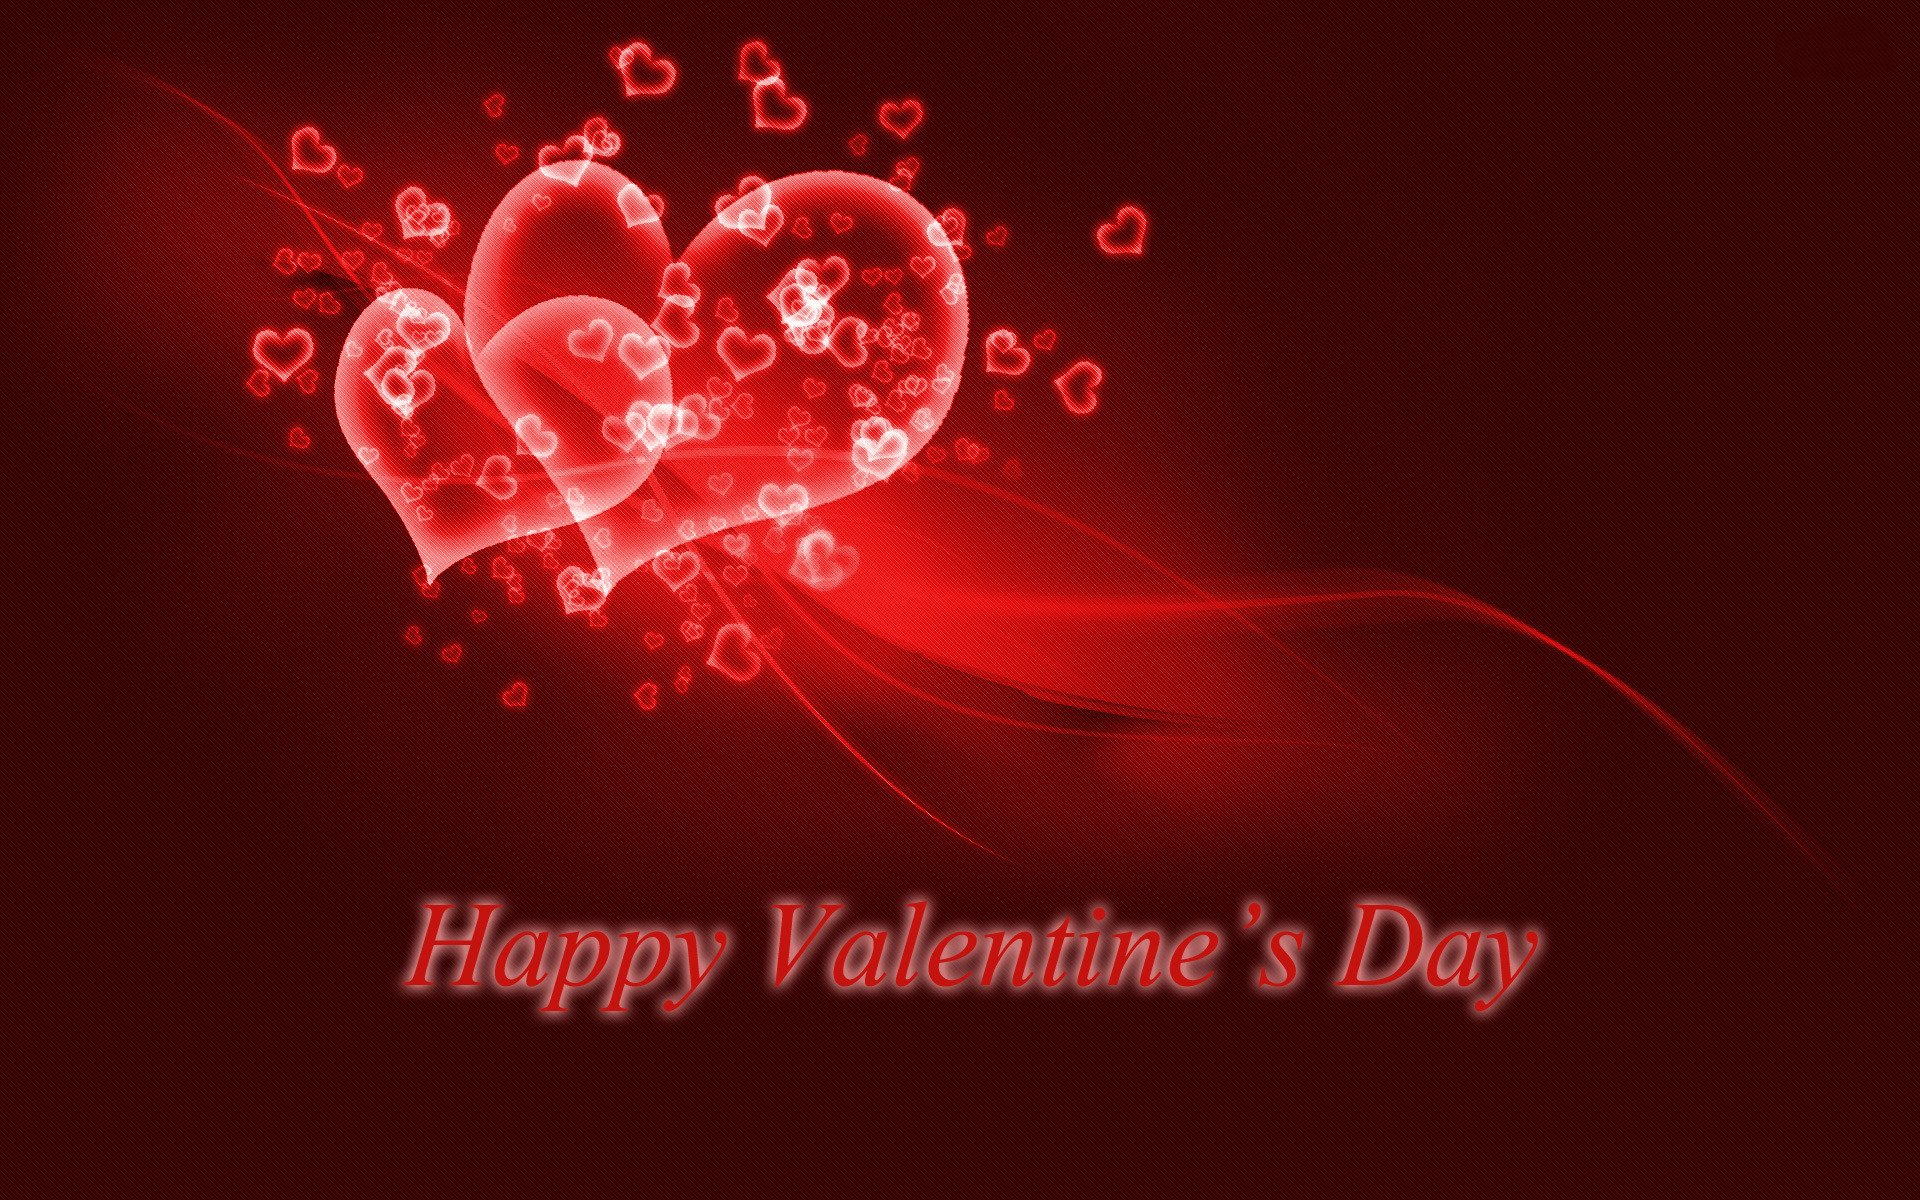 Holiday - Valentine's Day  - Valentines Day Wallpaper